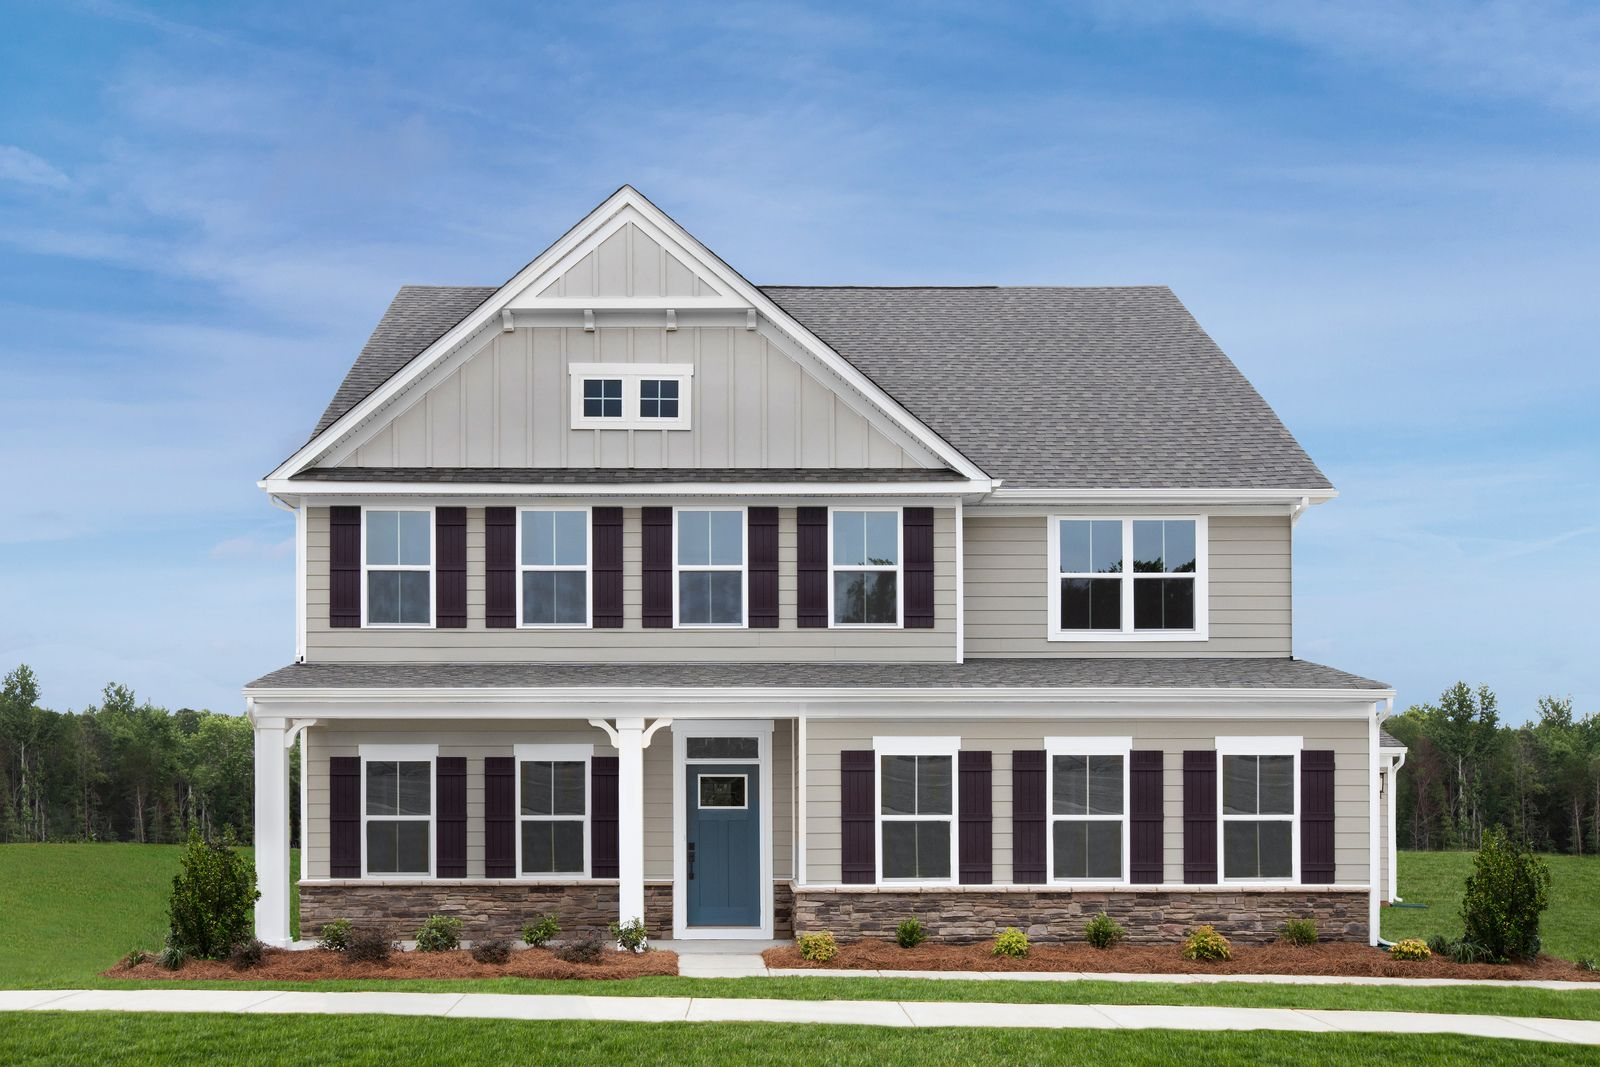 """Welcome to Giles!:Giles, voted """"Best New Home Community"""" in Hanover, features single-family homes with top ranked schools, resort-style amenities, and convenient location!Click here to schedule your VIP visit."""